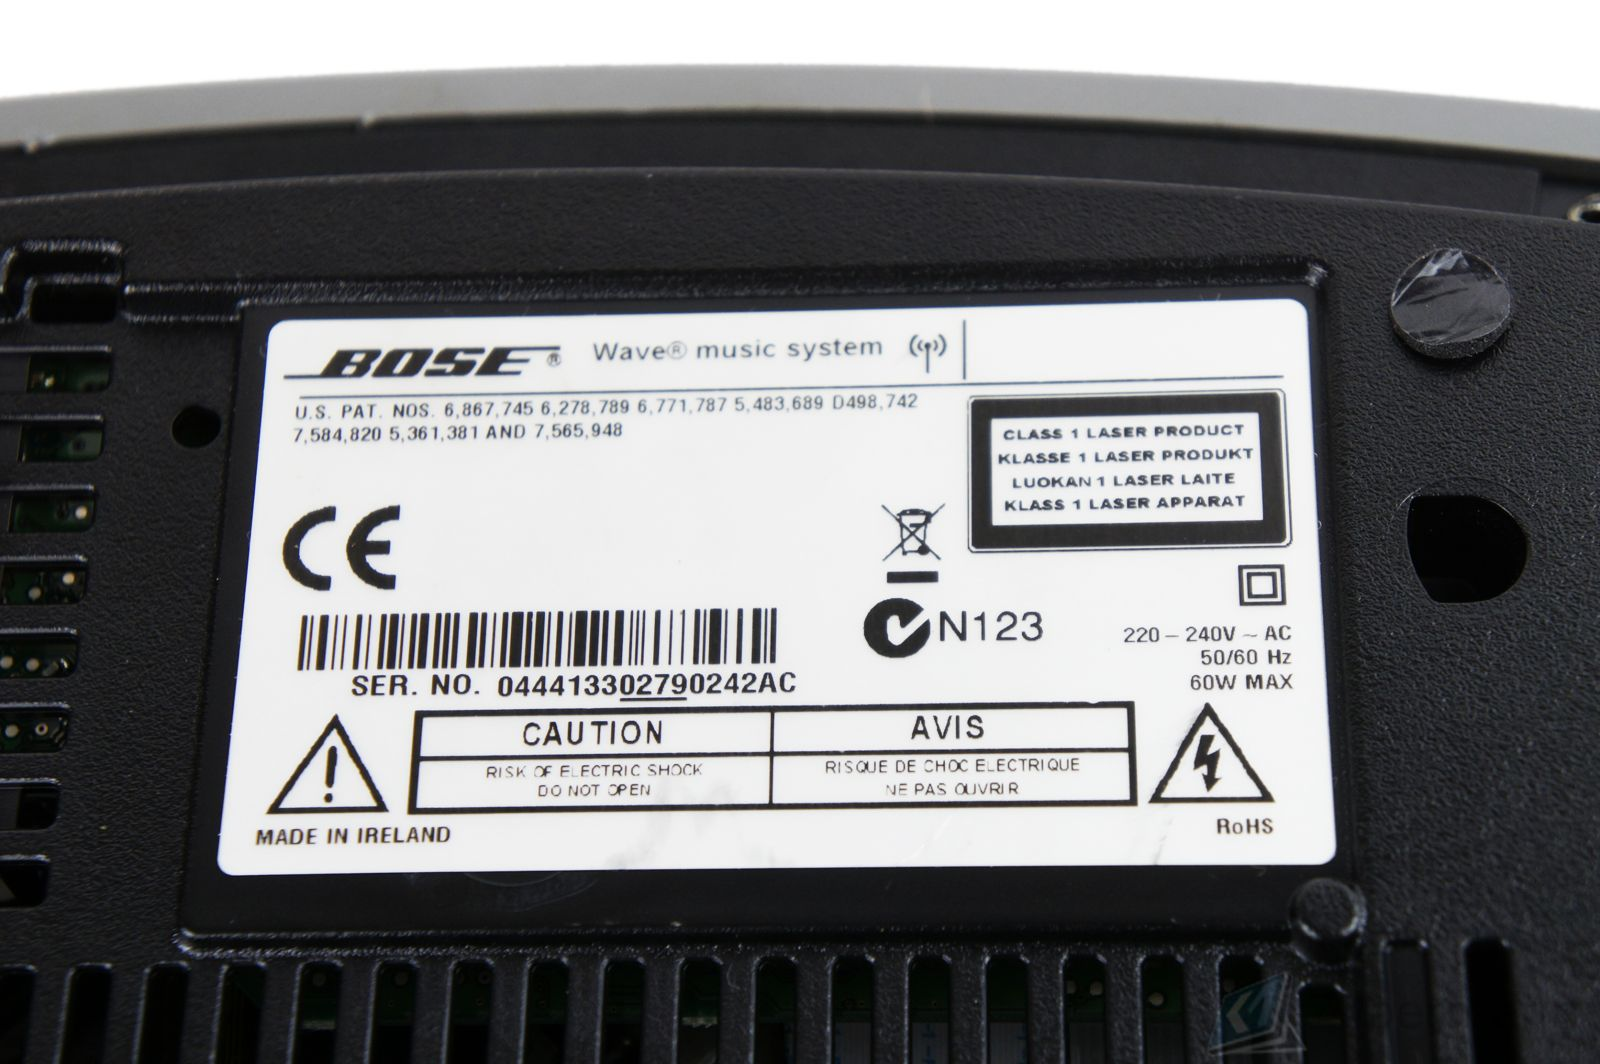 Bose_Wave_Music_System__Bose_Multi-CD_Wechsler_12